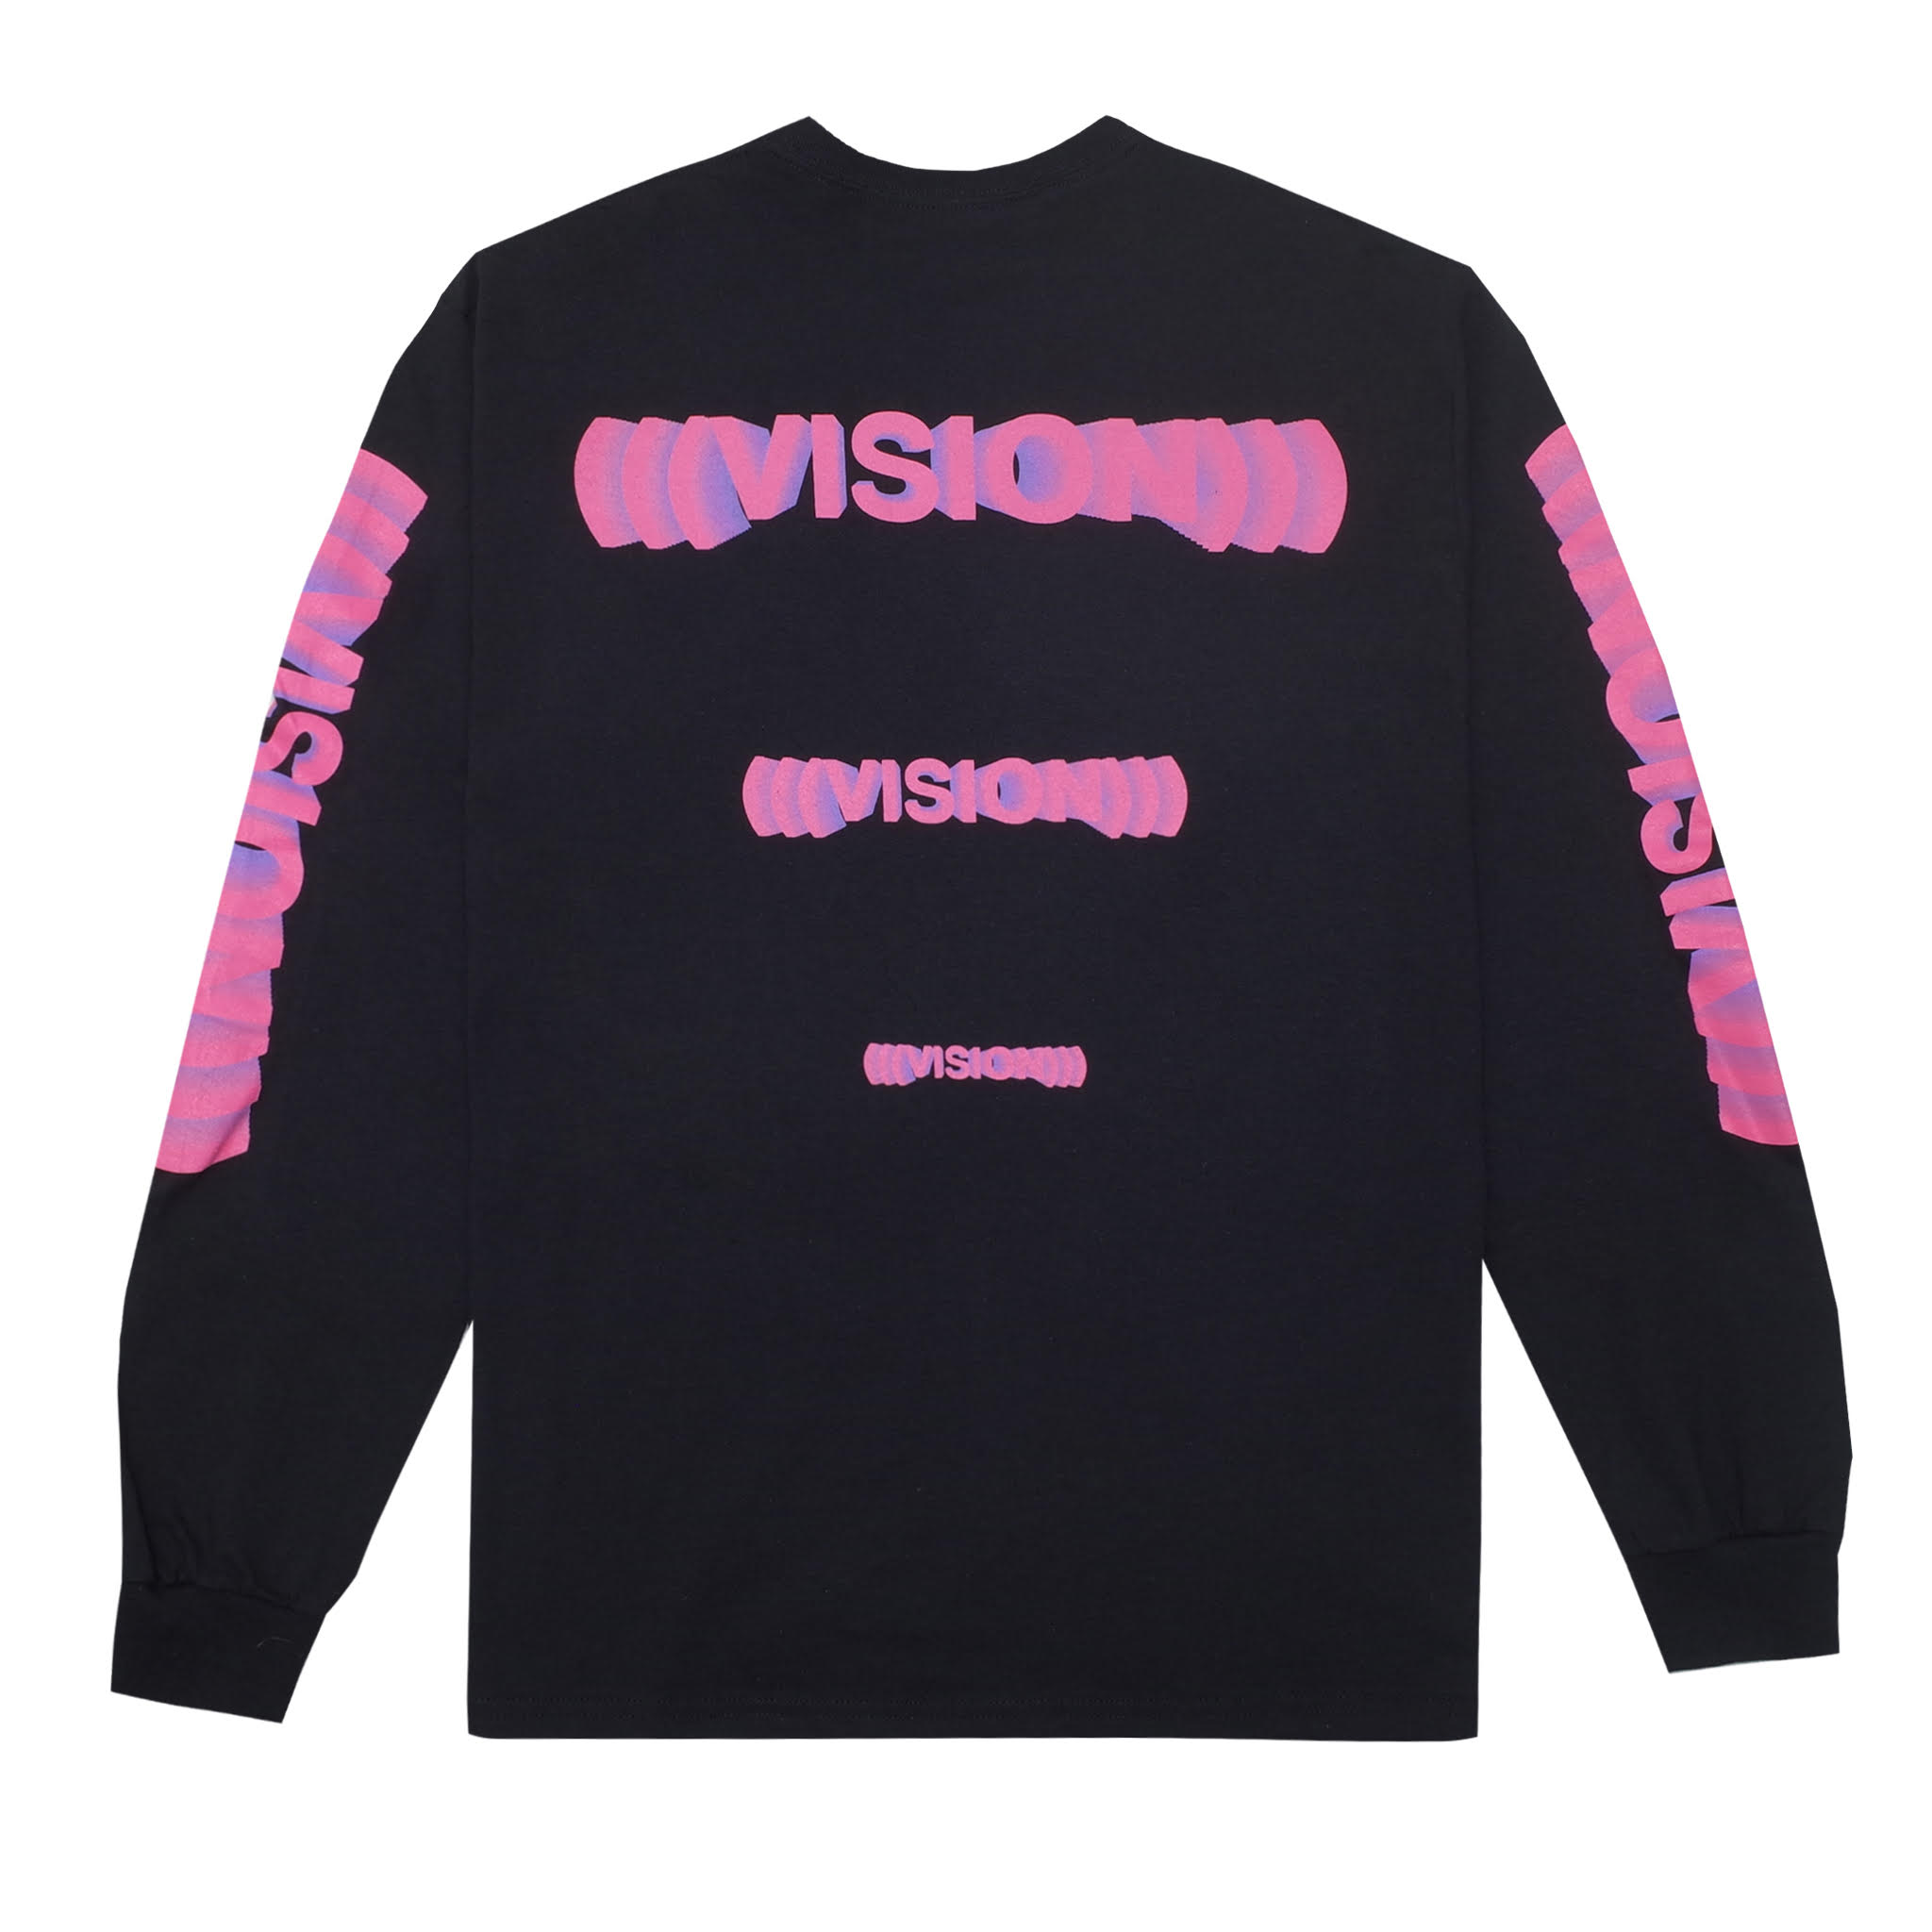 Vision Long Sleeve T-Shirt, Black